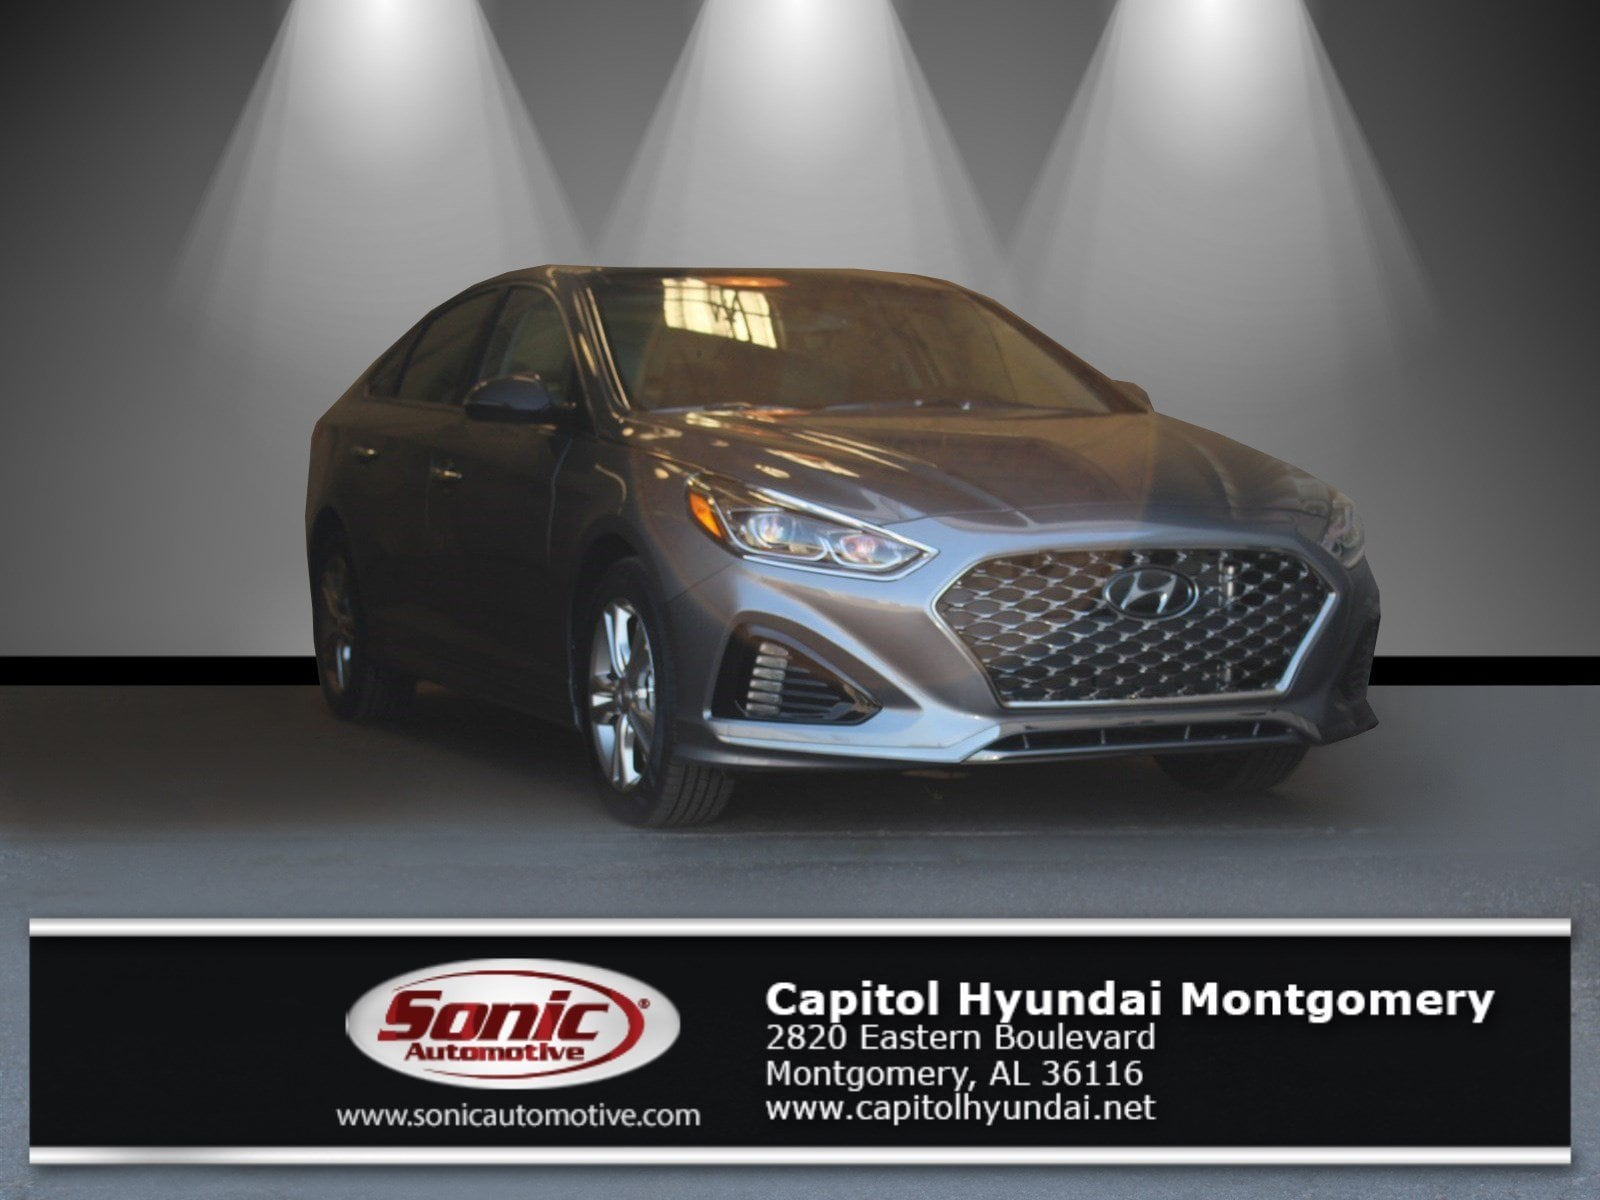 featured hyundai vehicles in montgomery al capitol. Black Bedroom Furniture Sets. Home Design Ideas